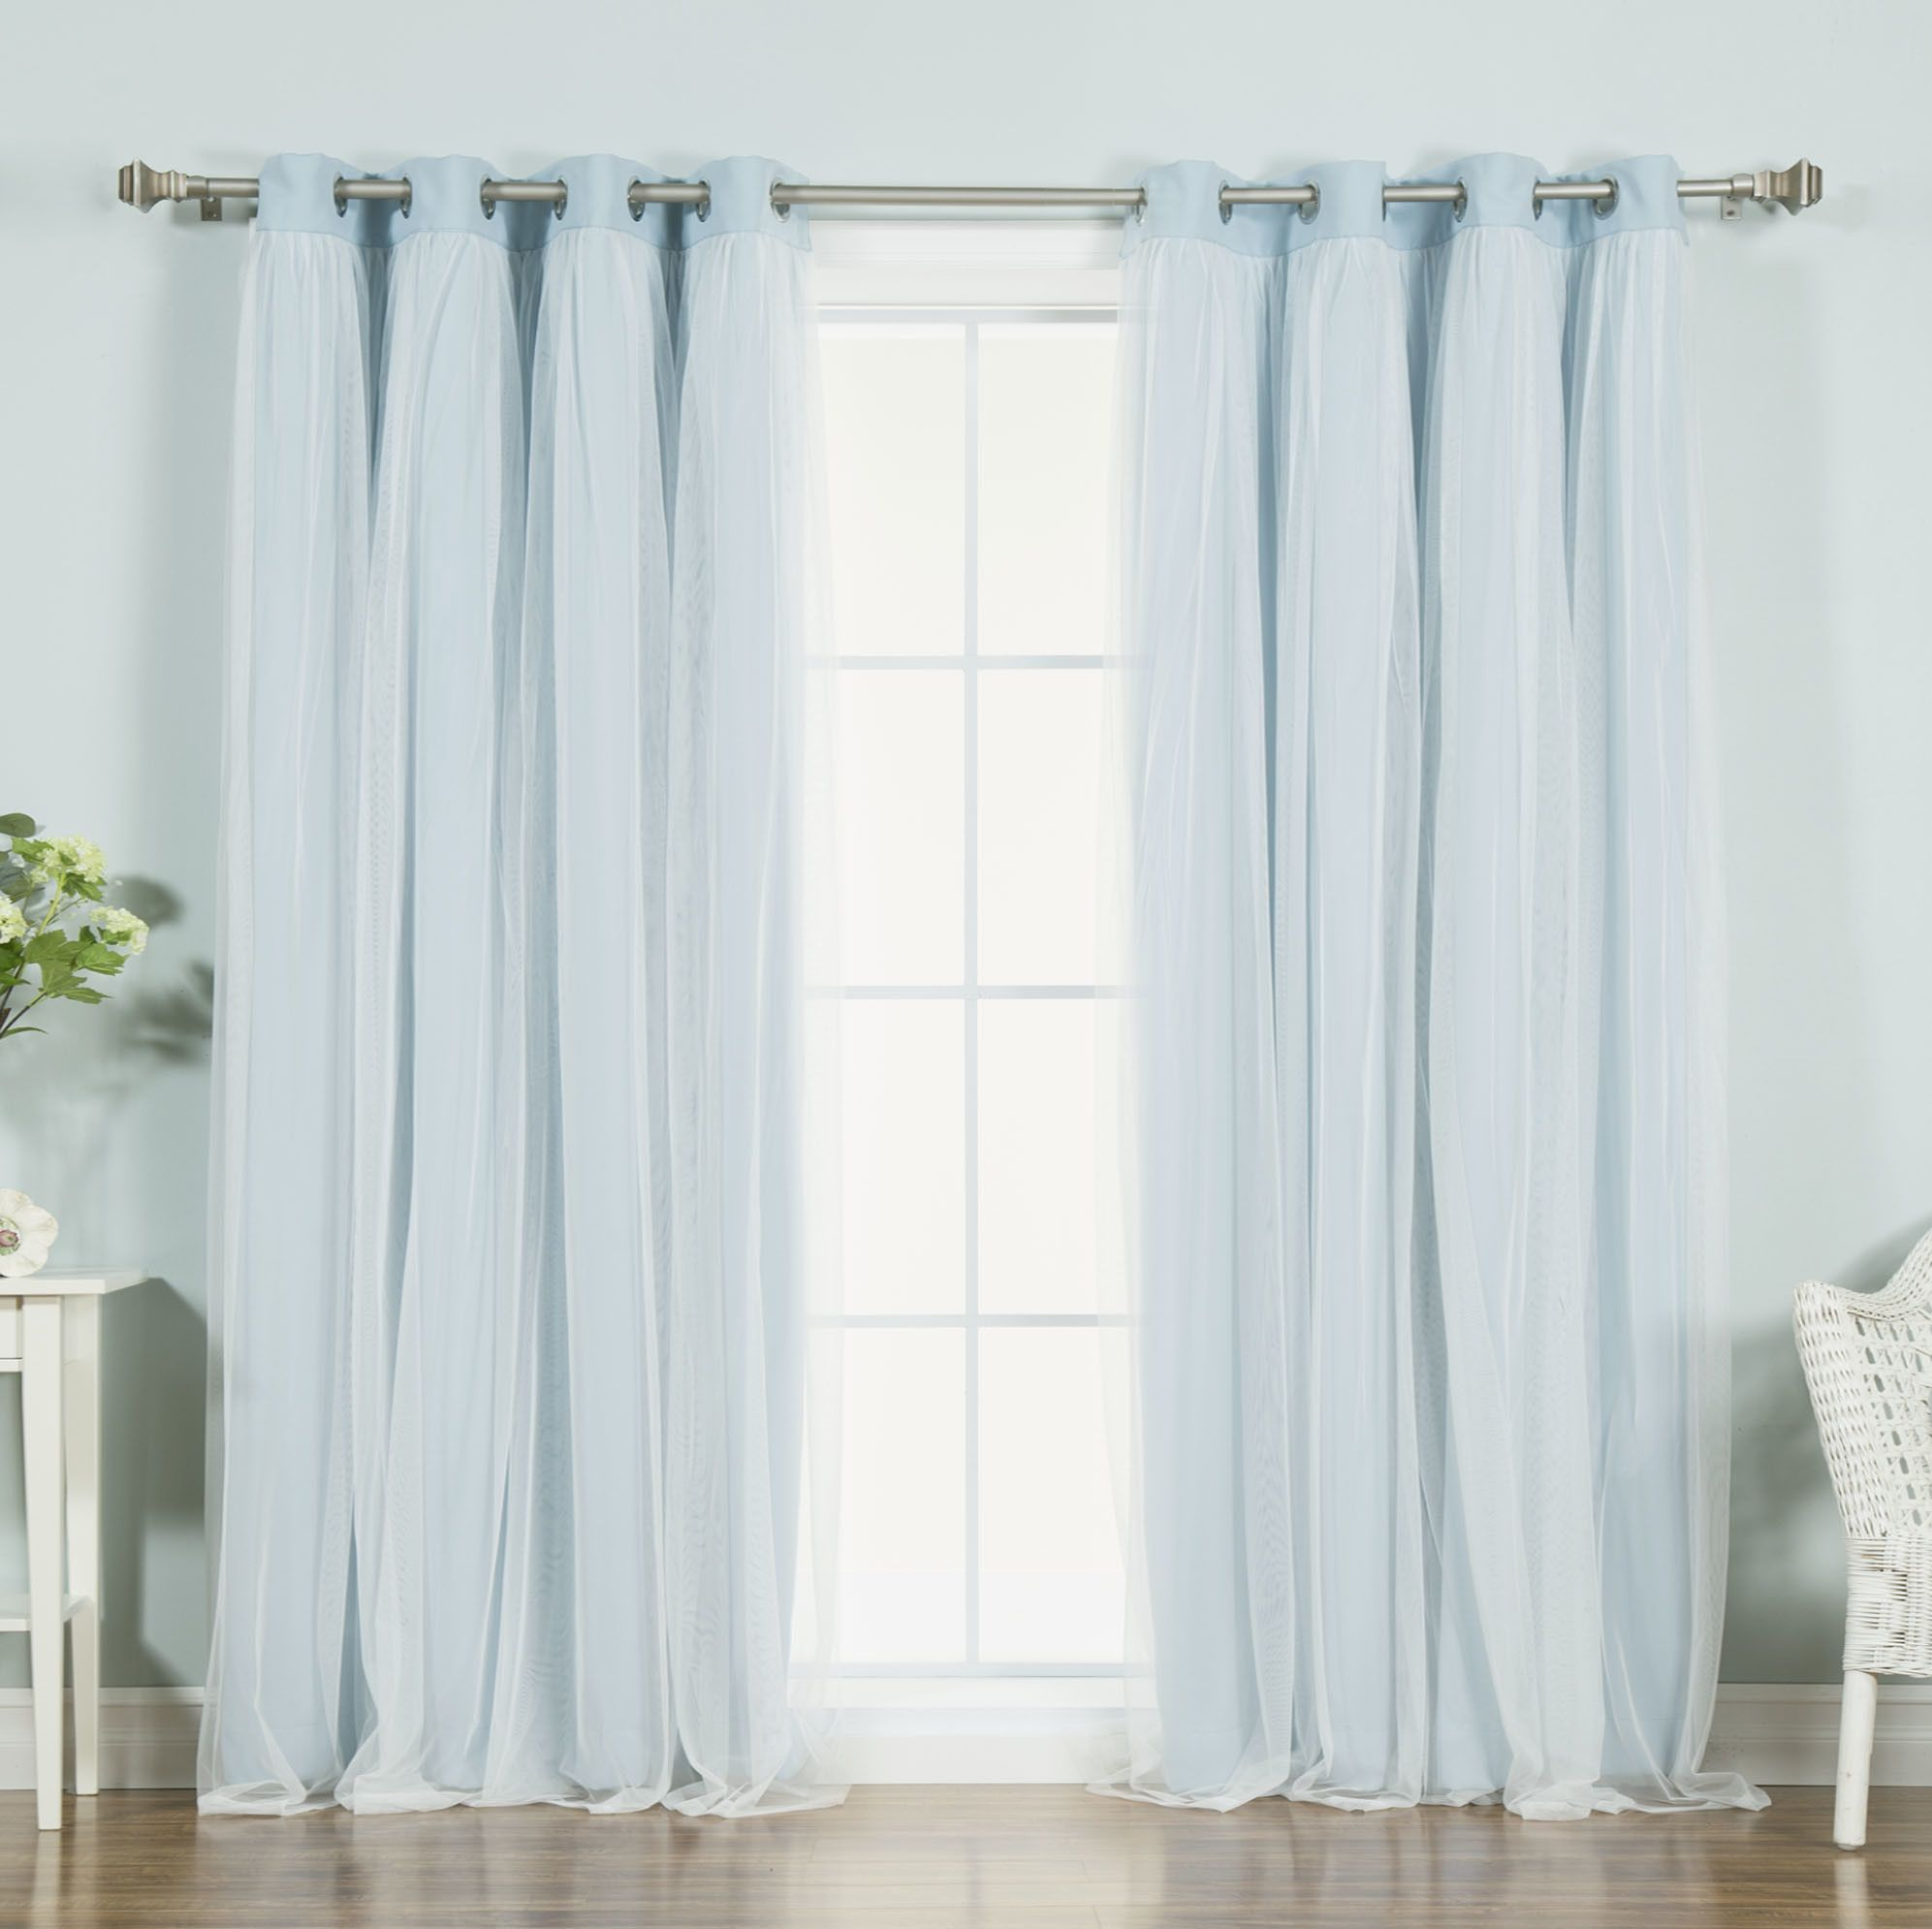 Anabelle Tulle Thermal Blackout Energy Efficient Grommet Curtain